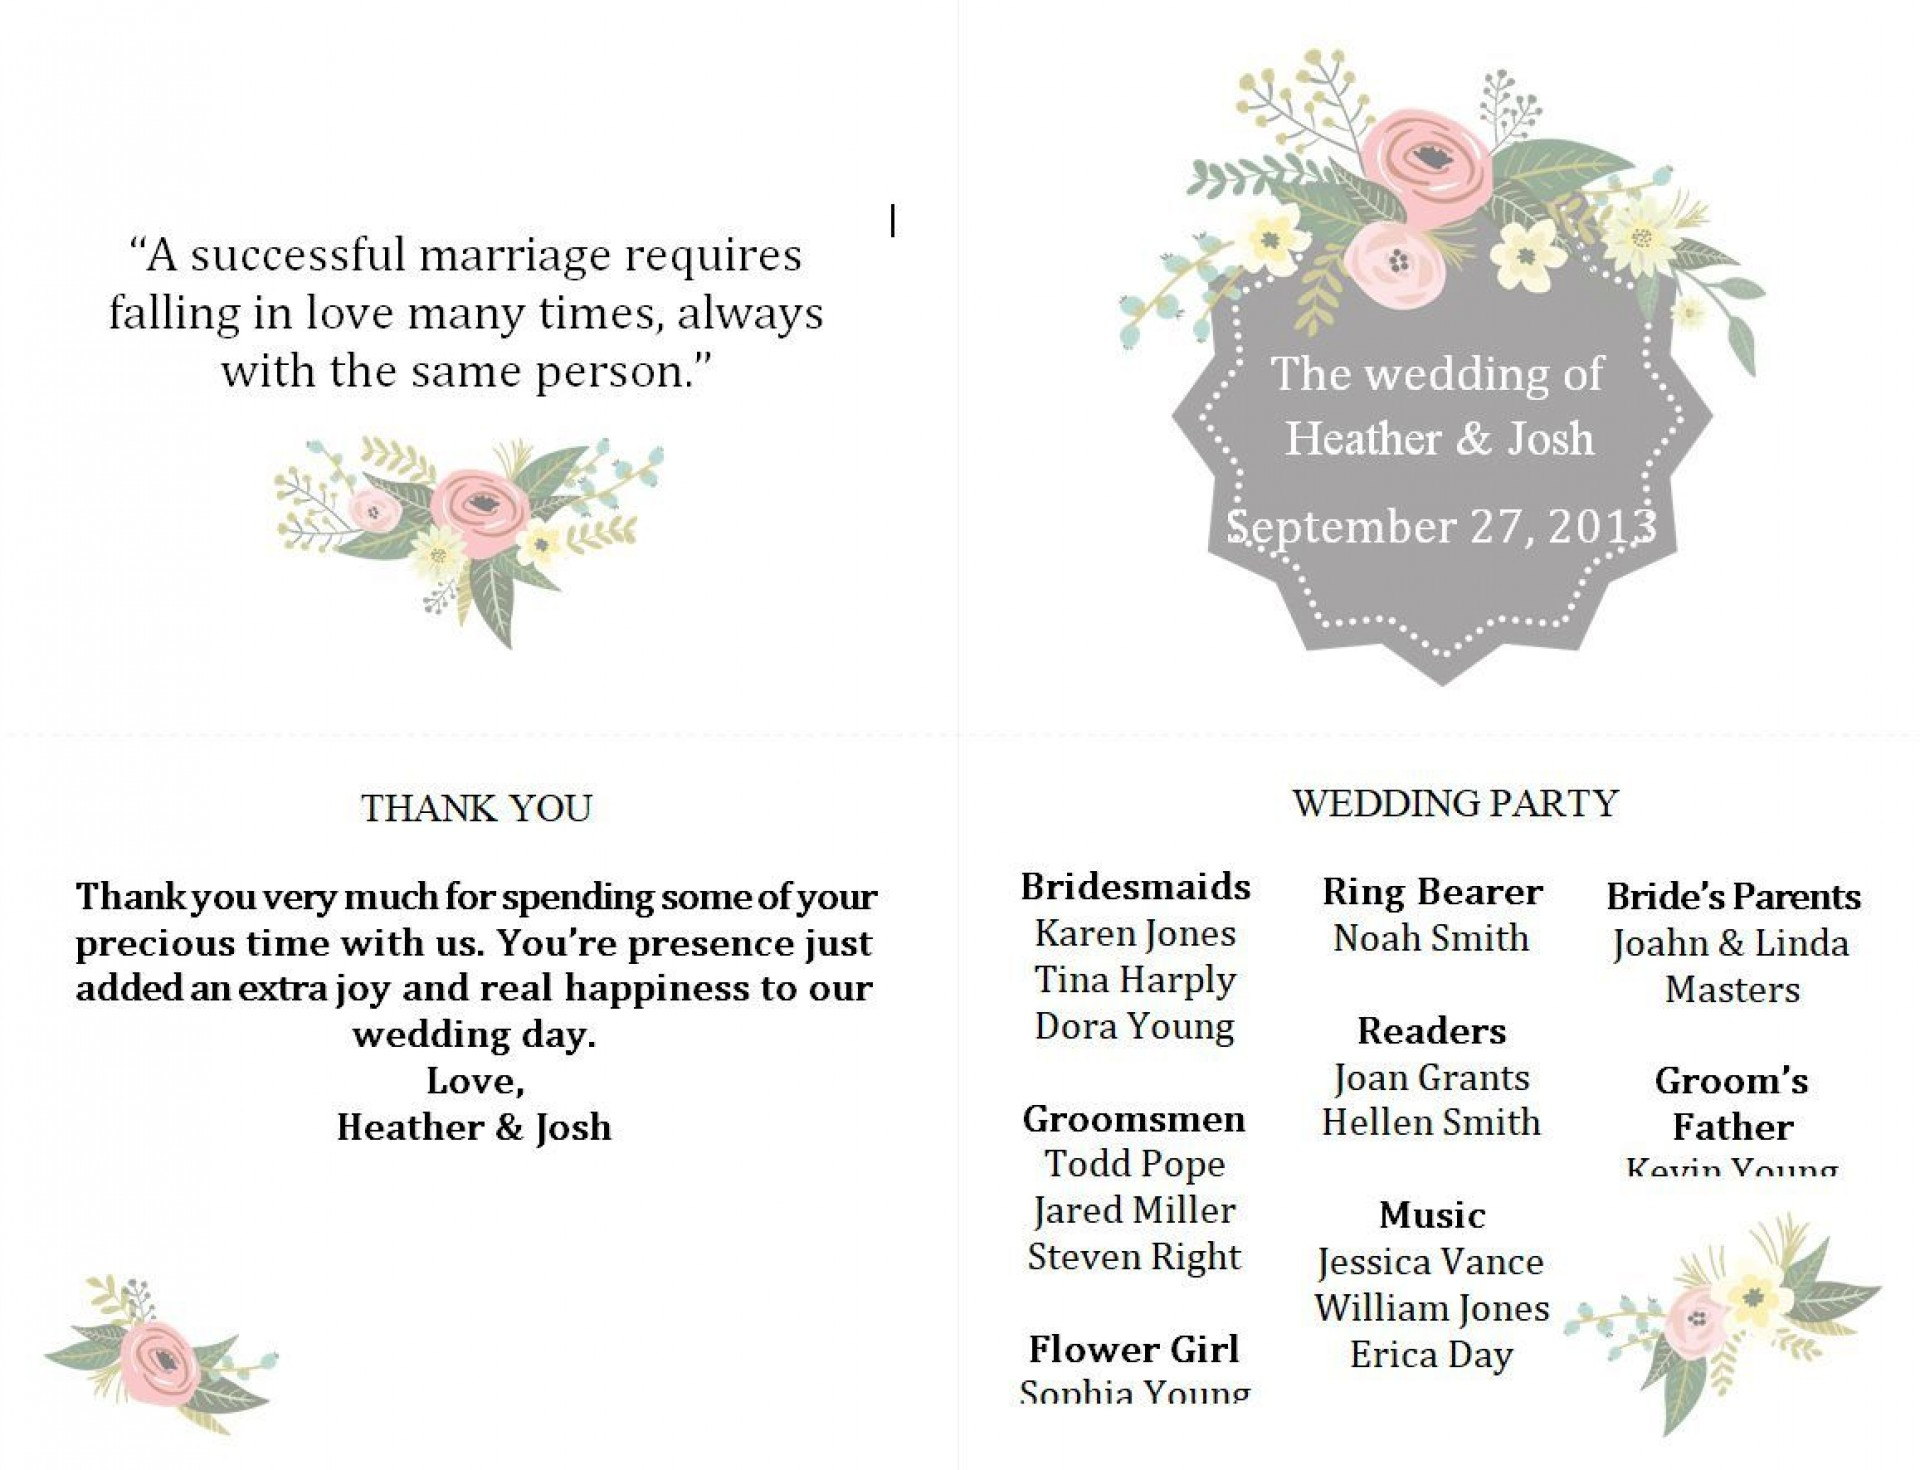 006 Stunning Wedding Order Of Service Template Free Download Picture  Downloadable That Can Be Printed1920